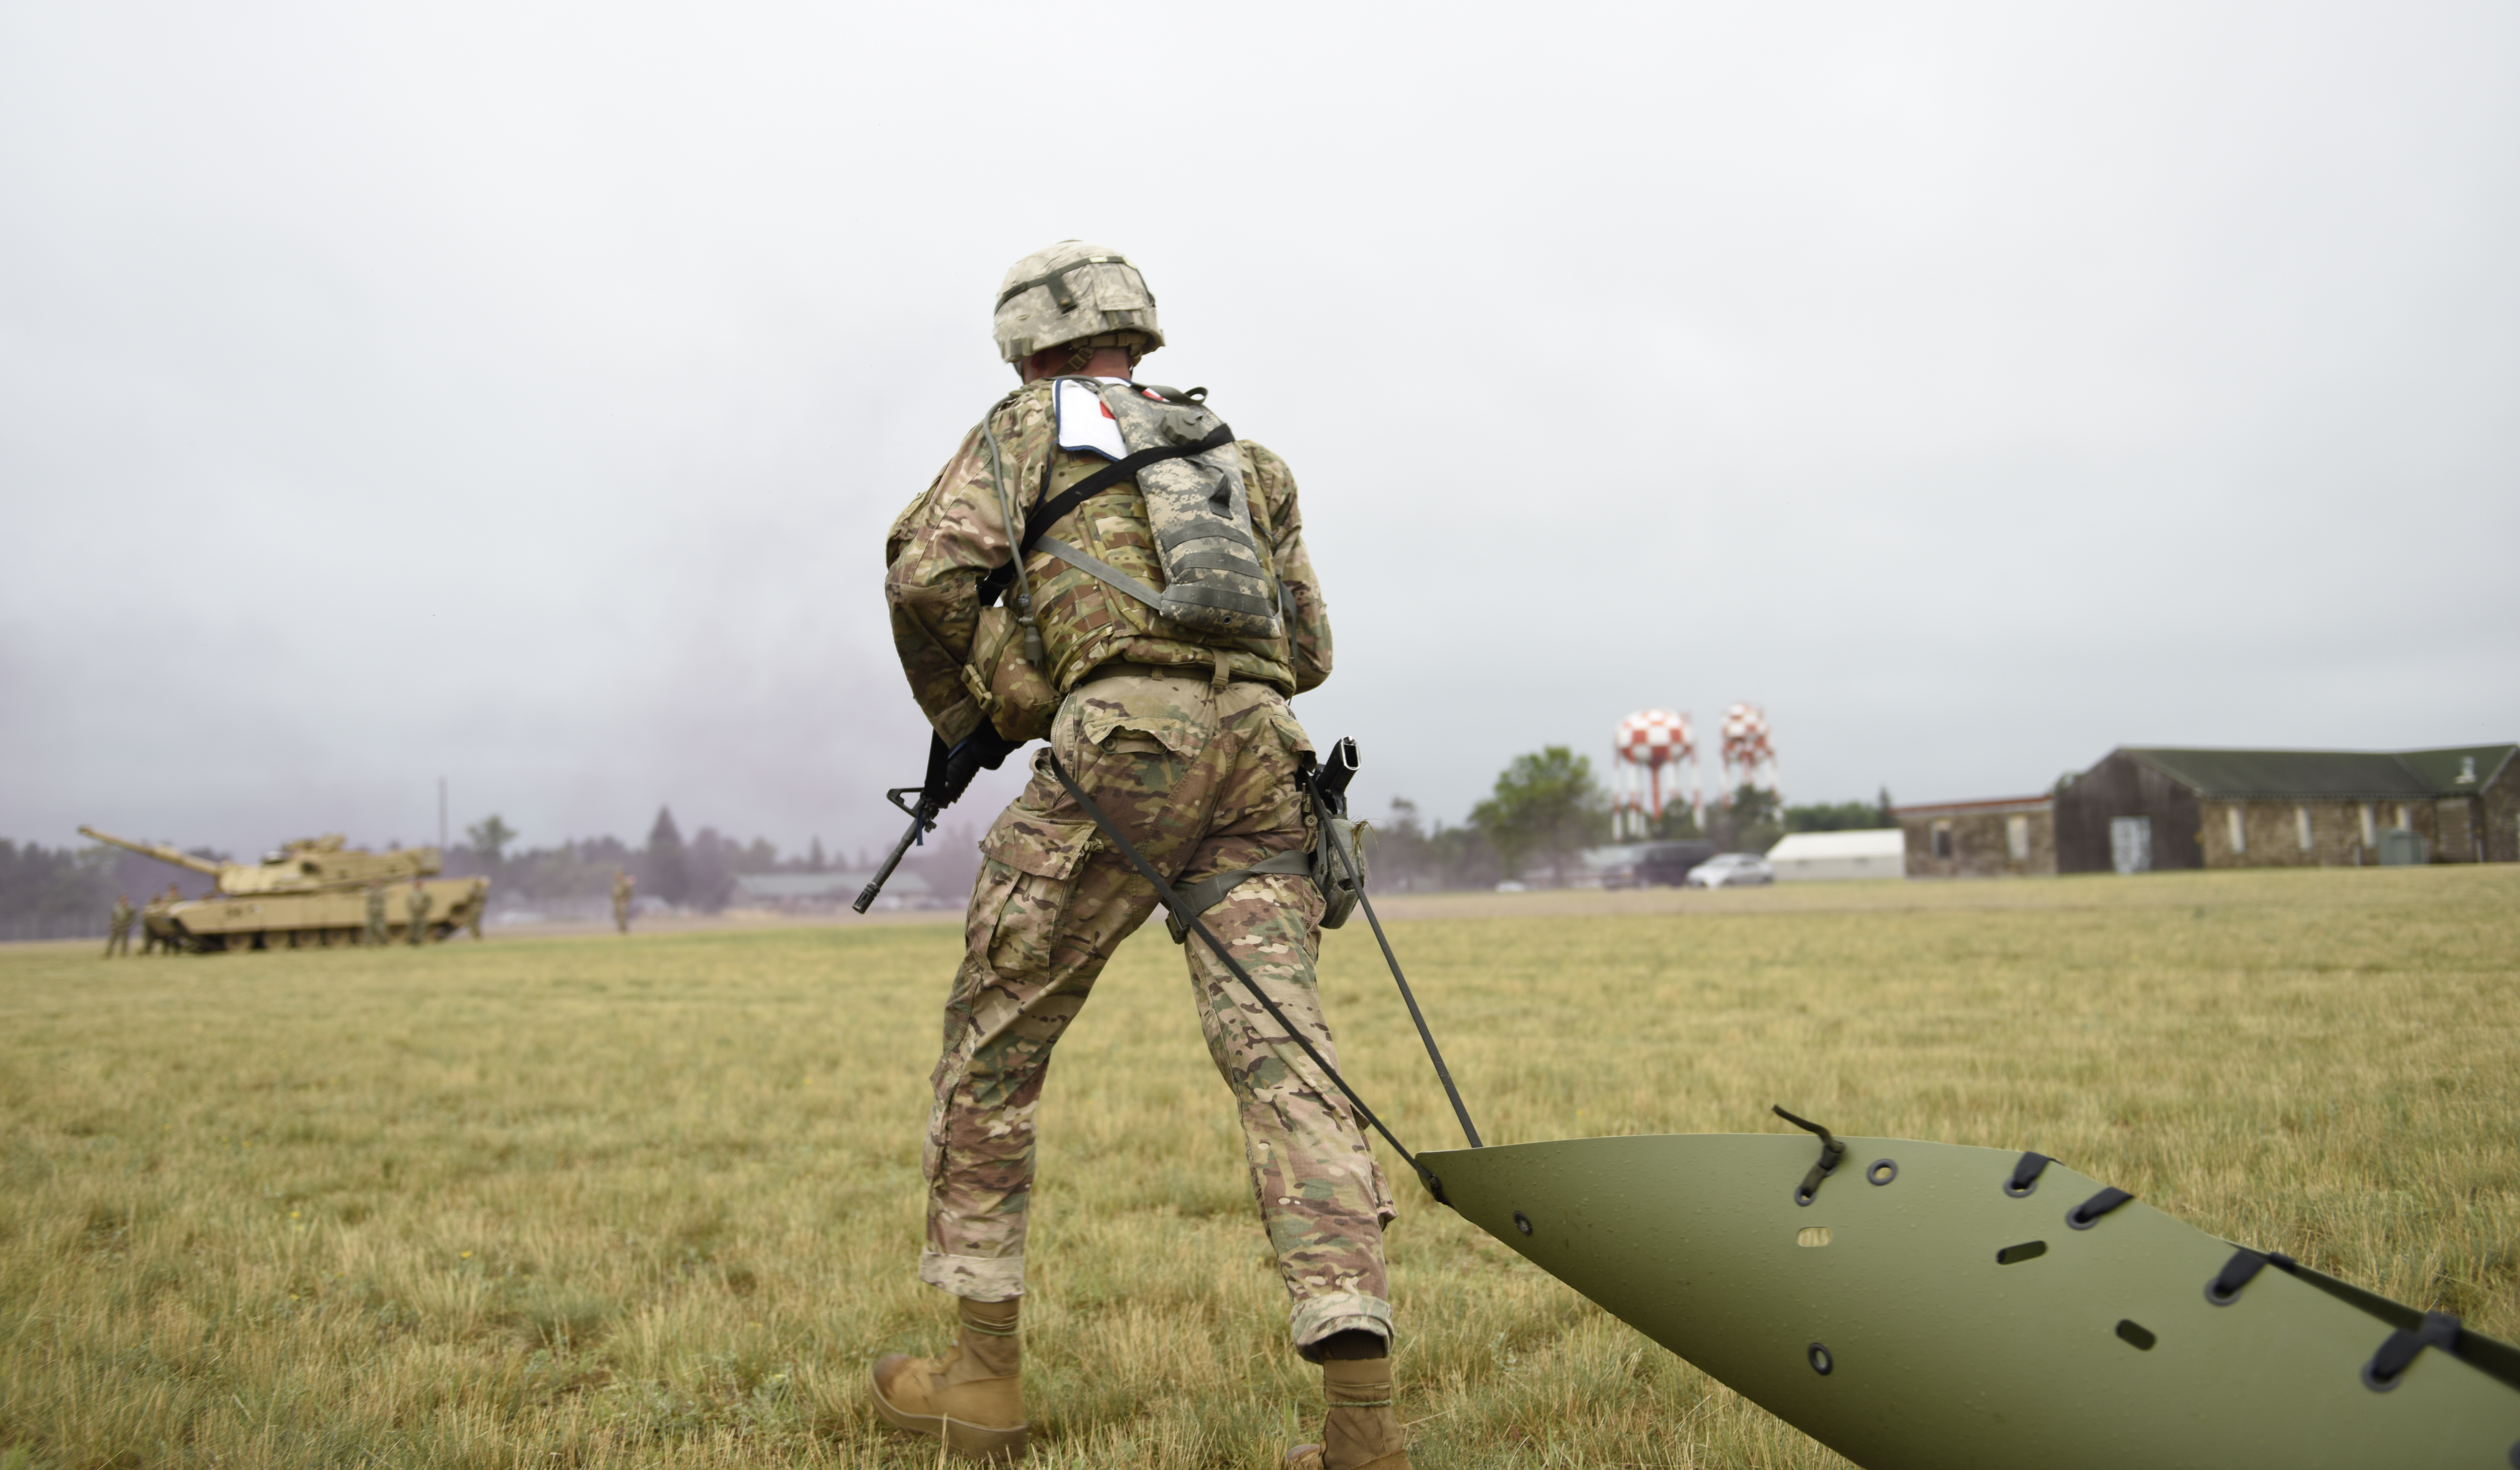 A picture of a military service member training by pulling a large object.